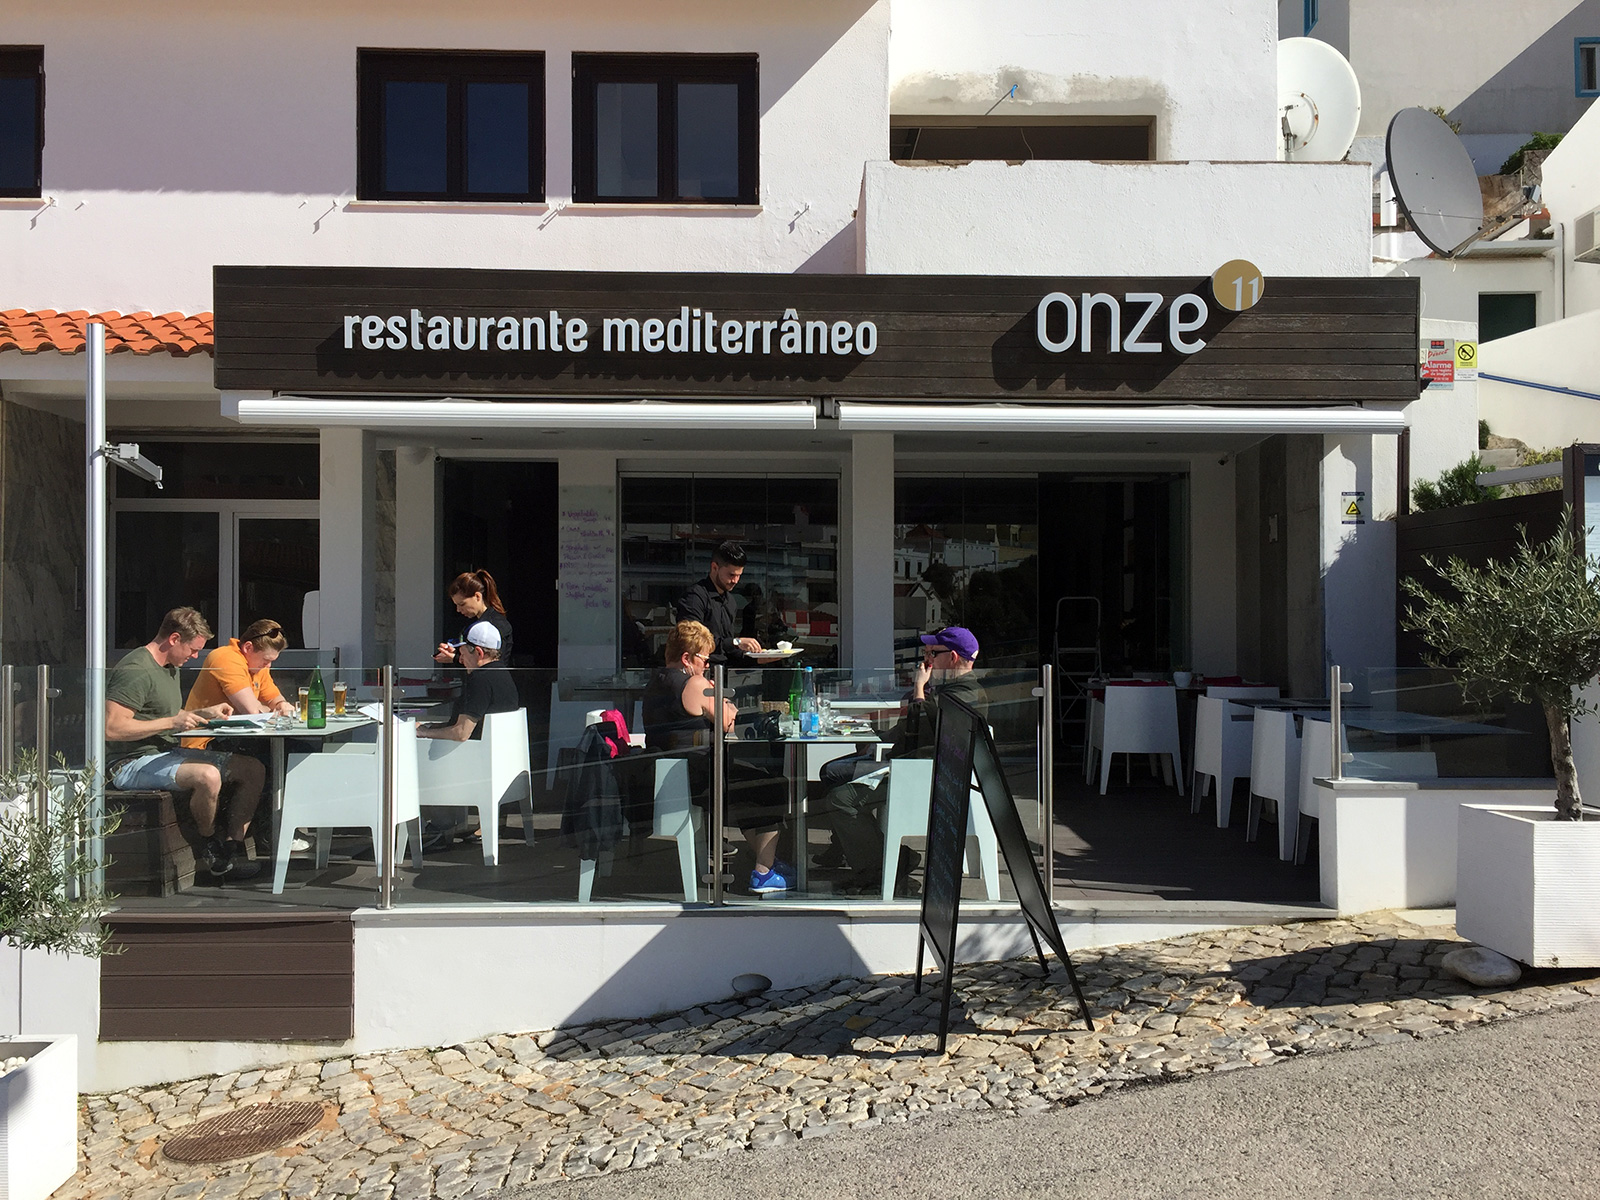 Onze Restaurant in Carvoeiro, Portugal by Jets Like Taxis